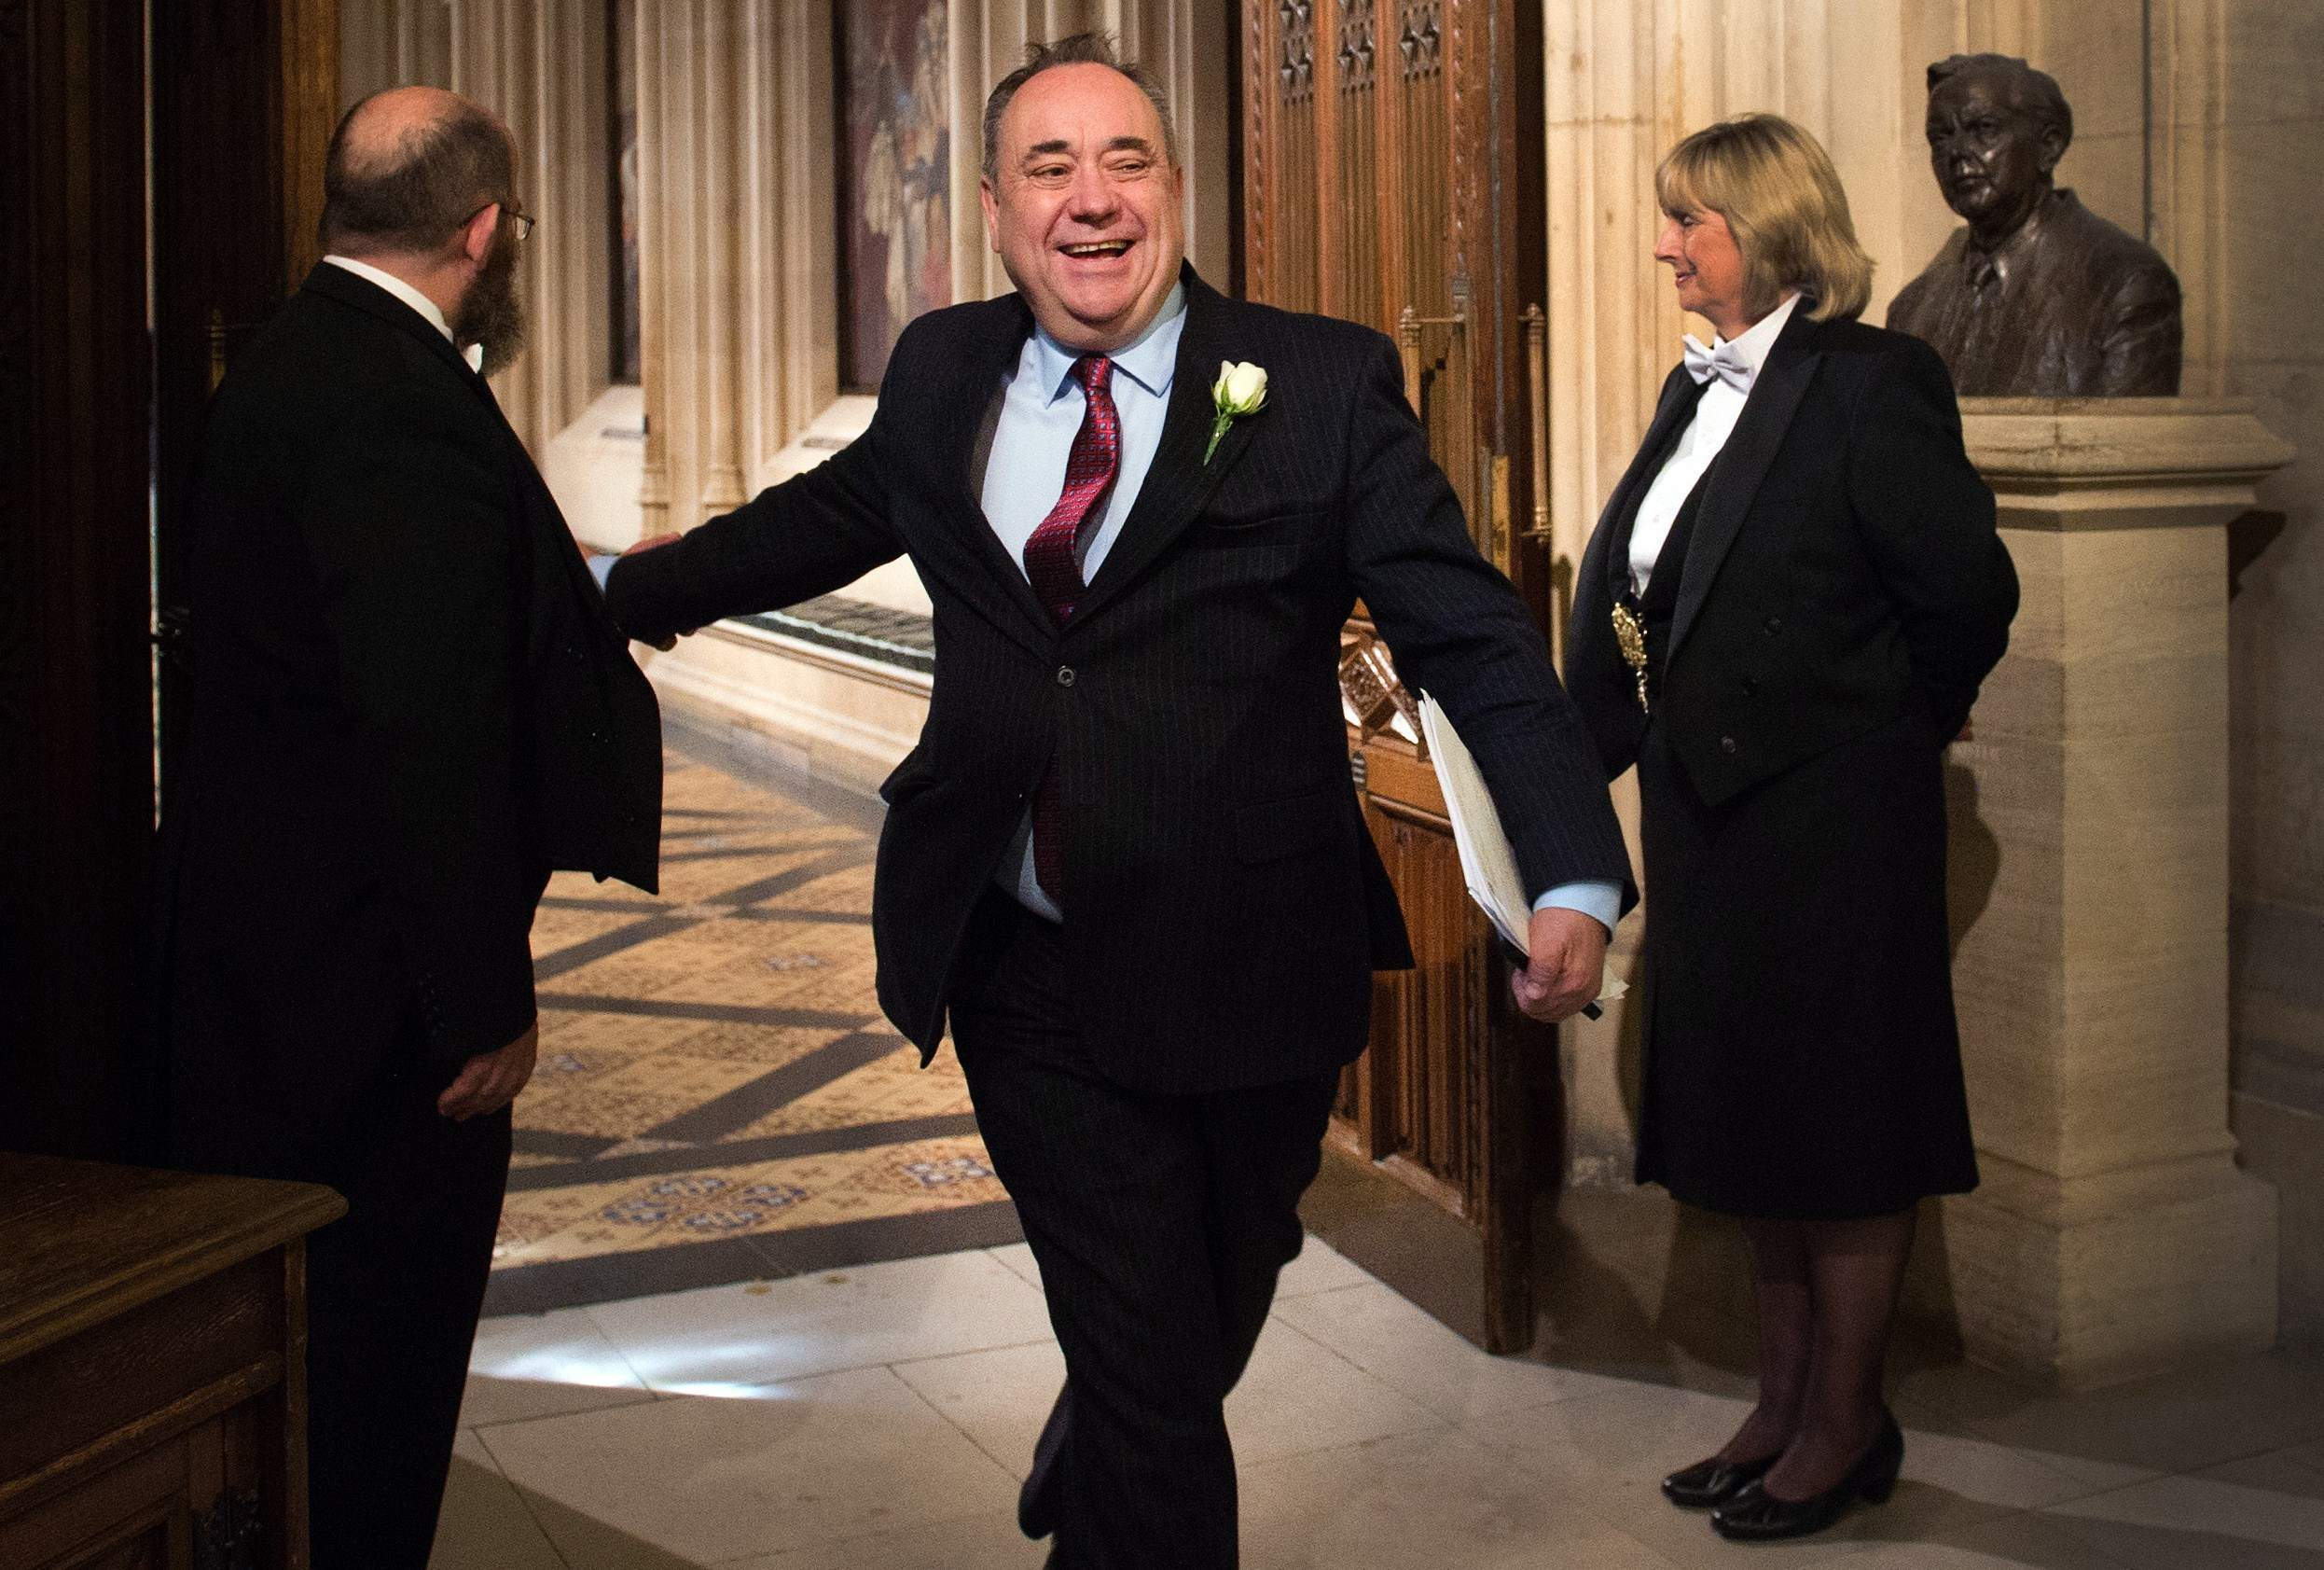 Alex Salmond made the worst joke and I for one feel sorry for him